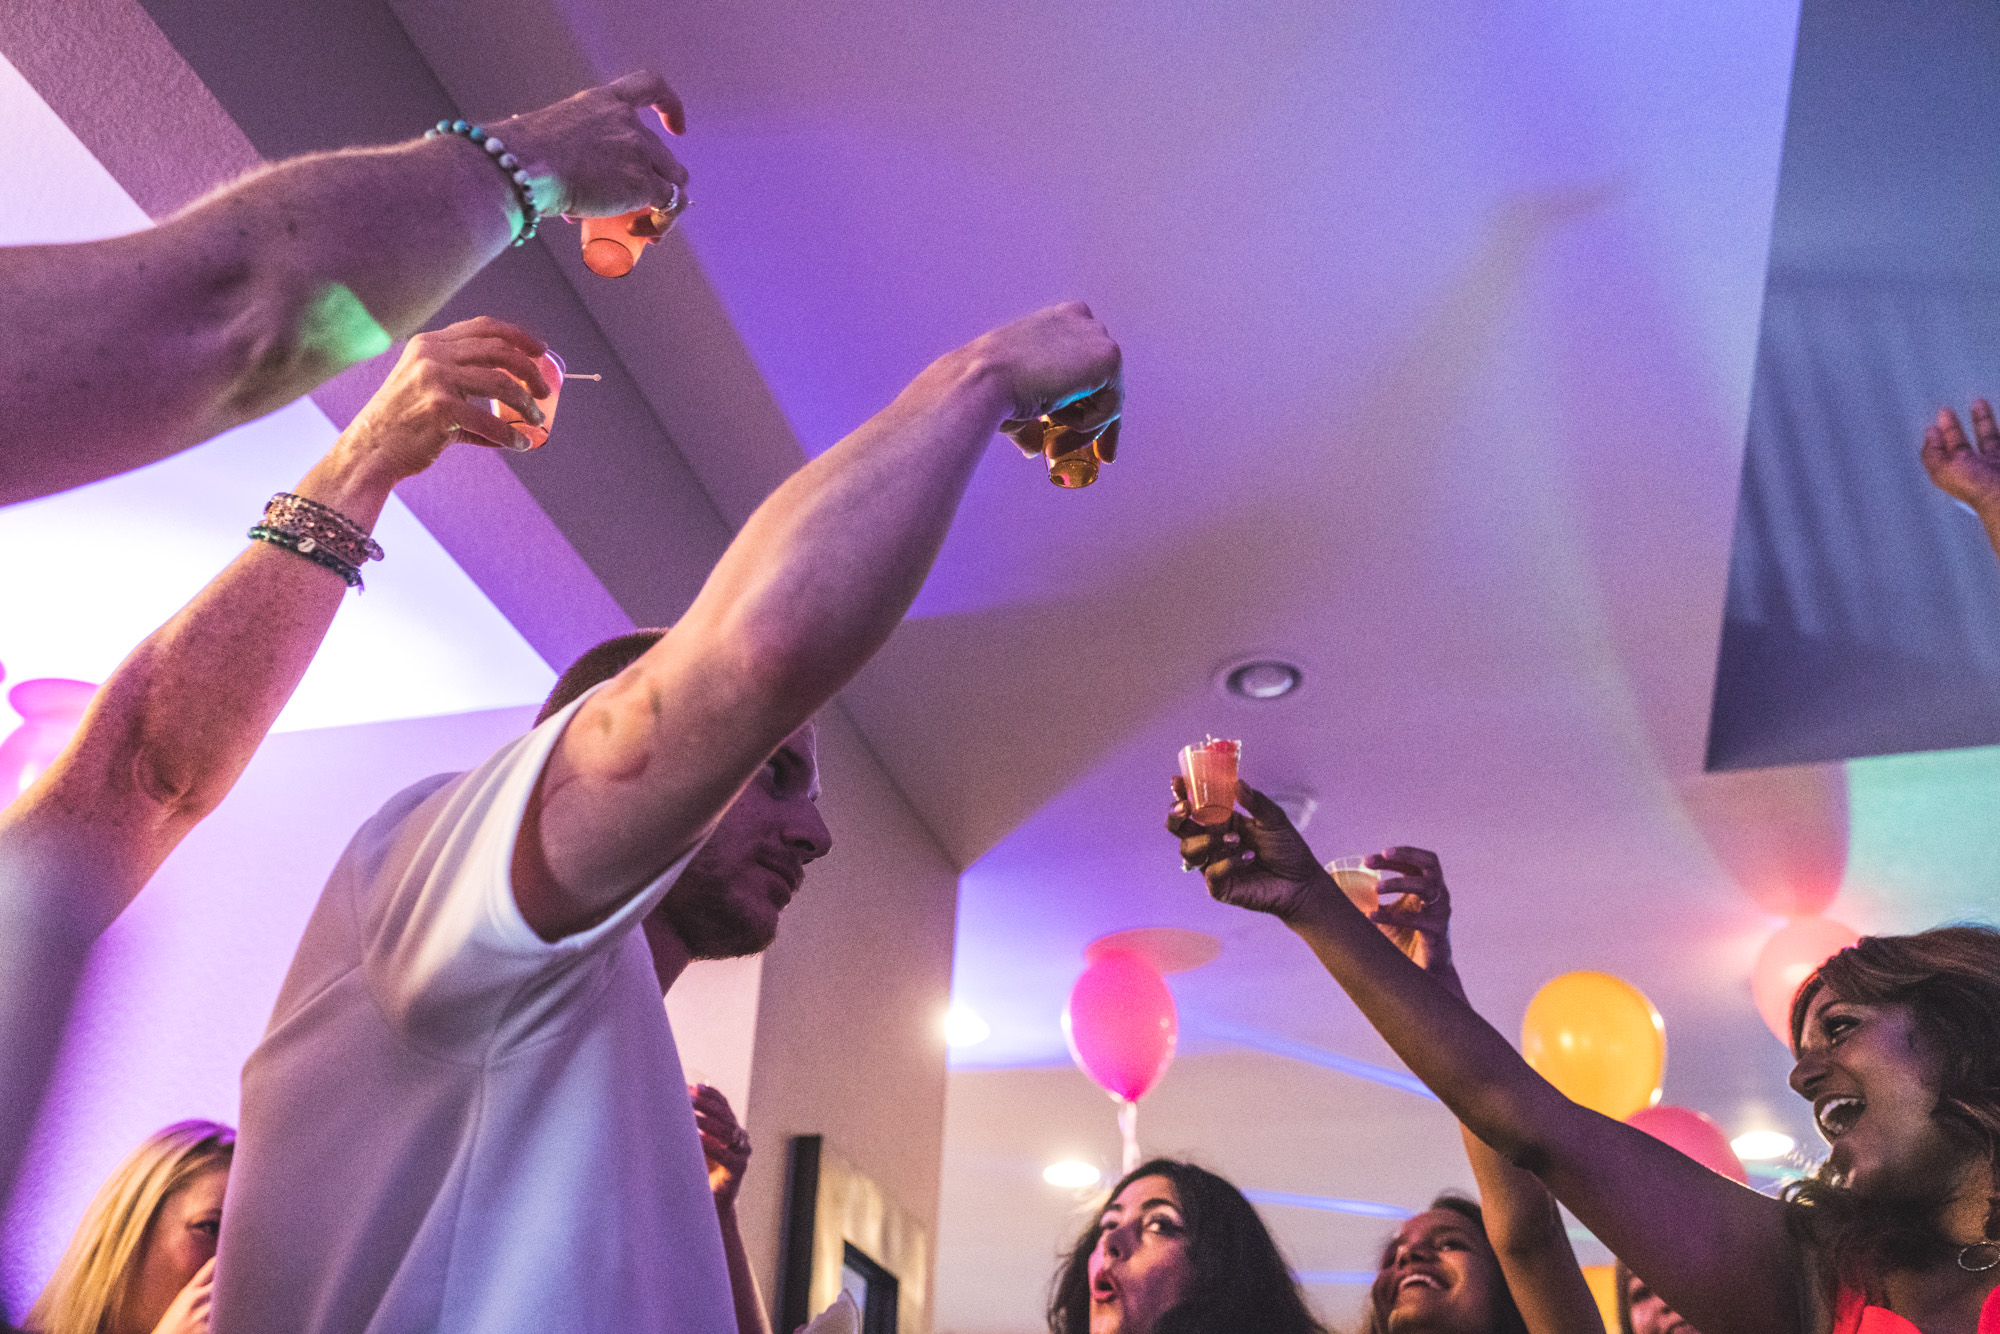 A large group of friends raises shots in celebration of a birthday, with brightly colored lights and balloons decorating the scene